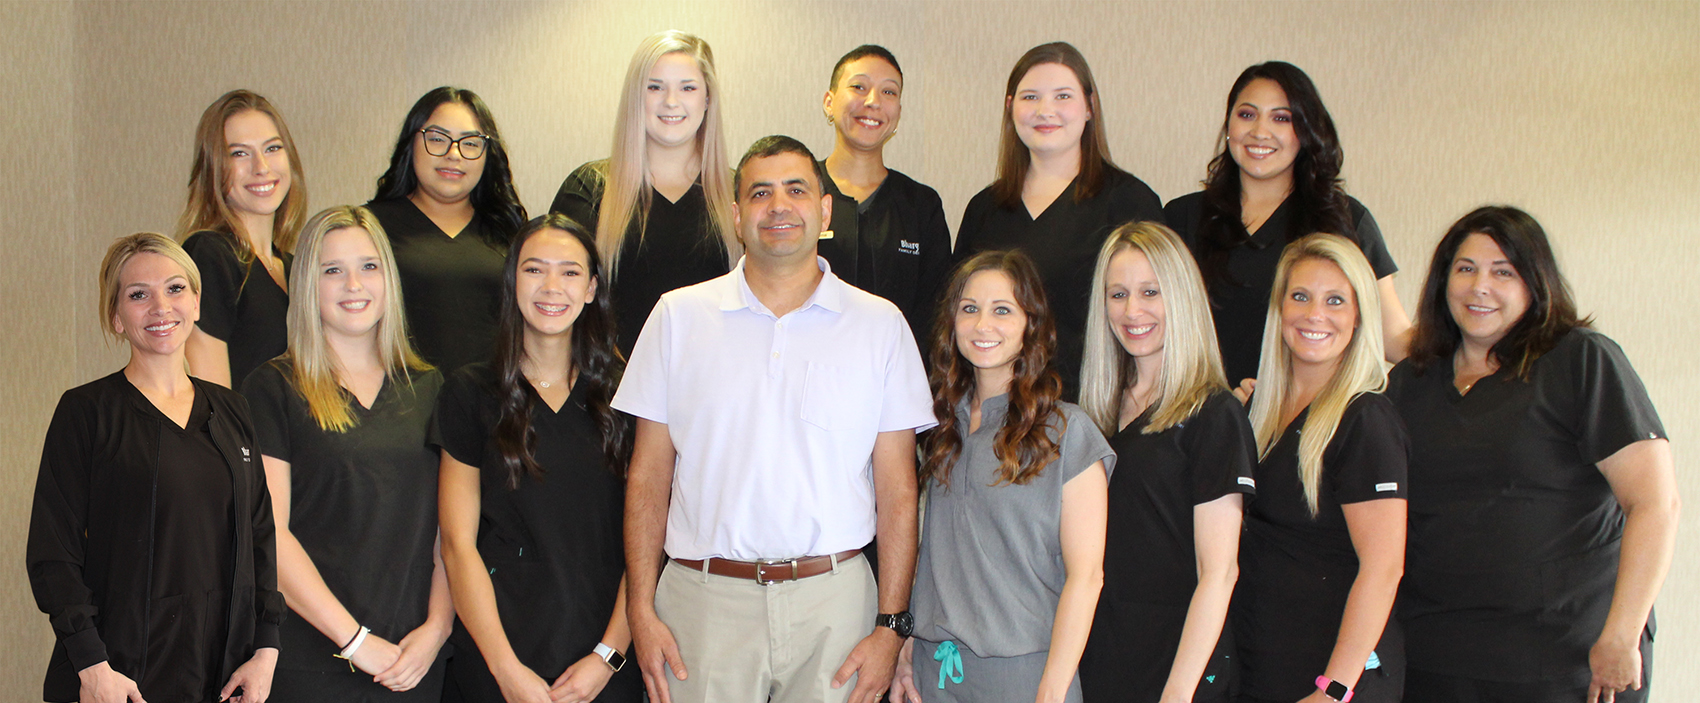 Photo of dentists and staff of Bhargava Family Dentistry in Wichita